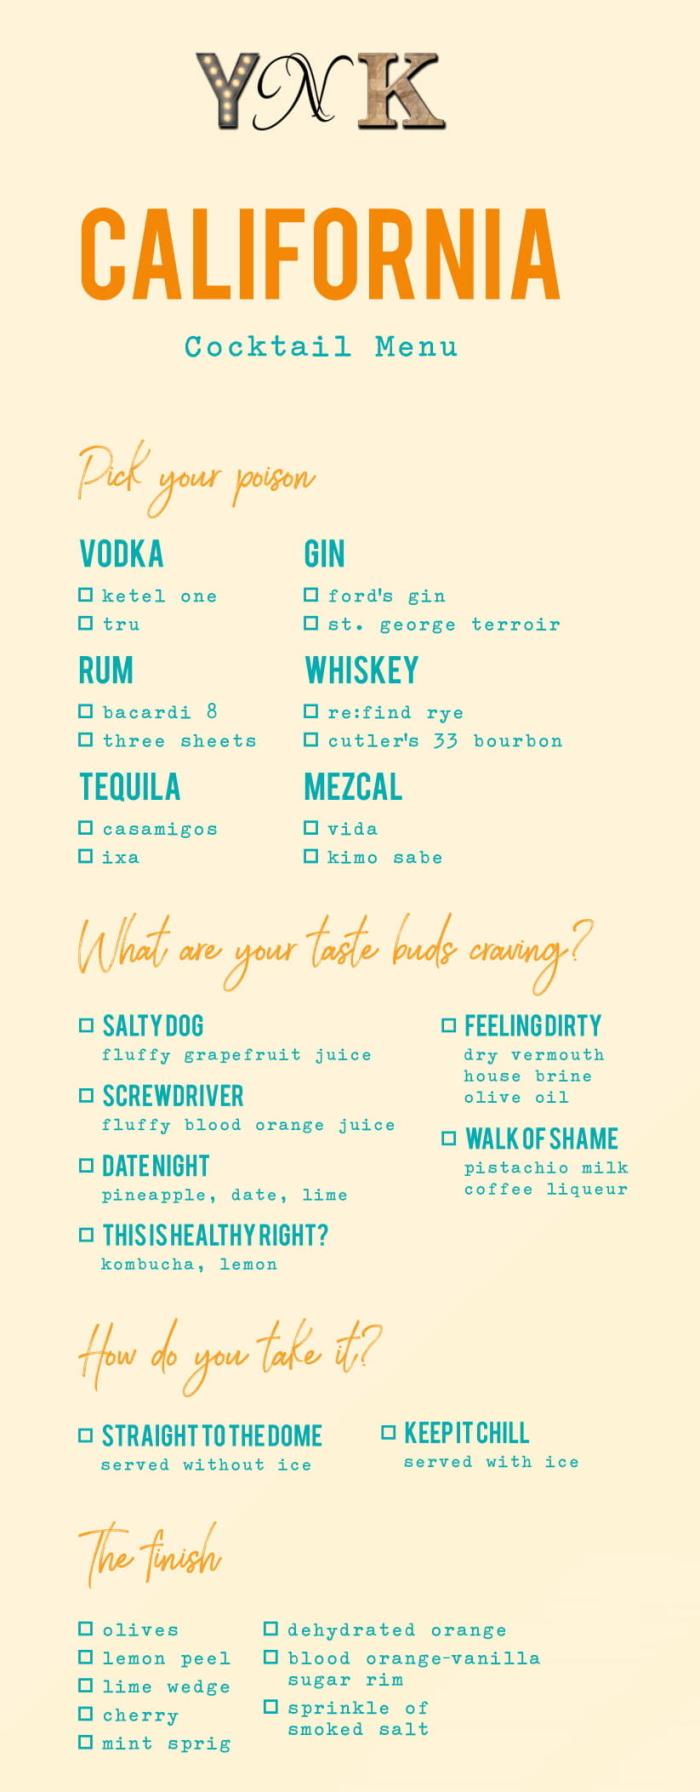 YNK California Cocktail Menu